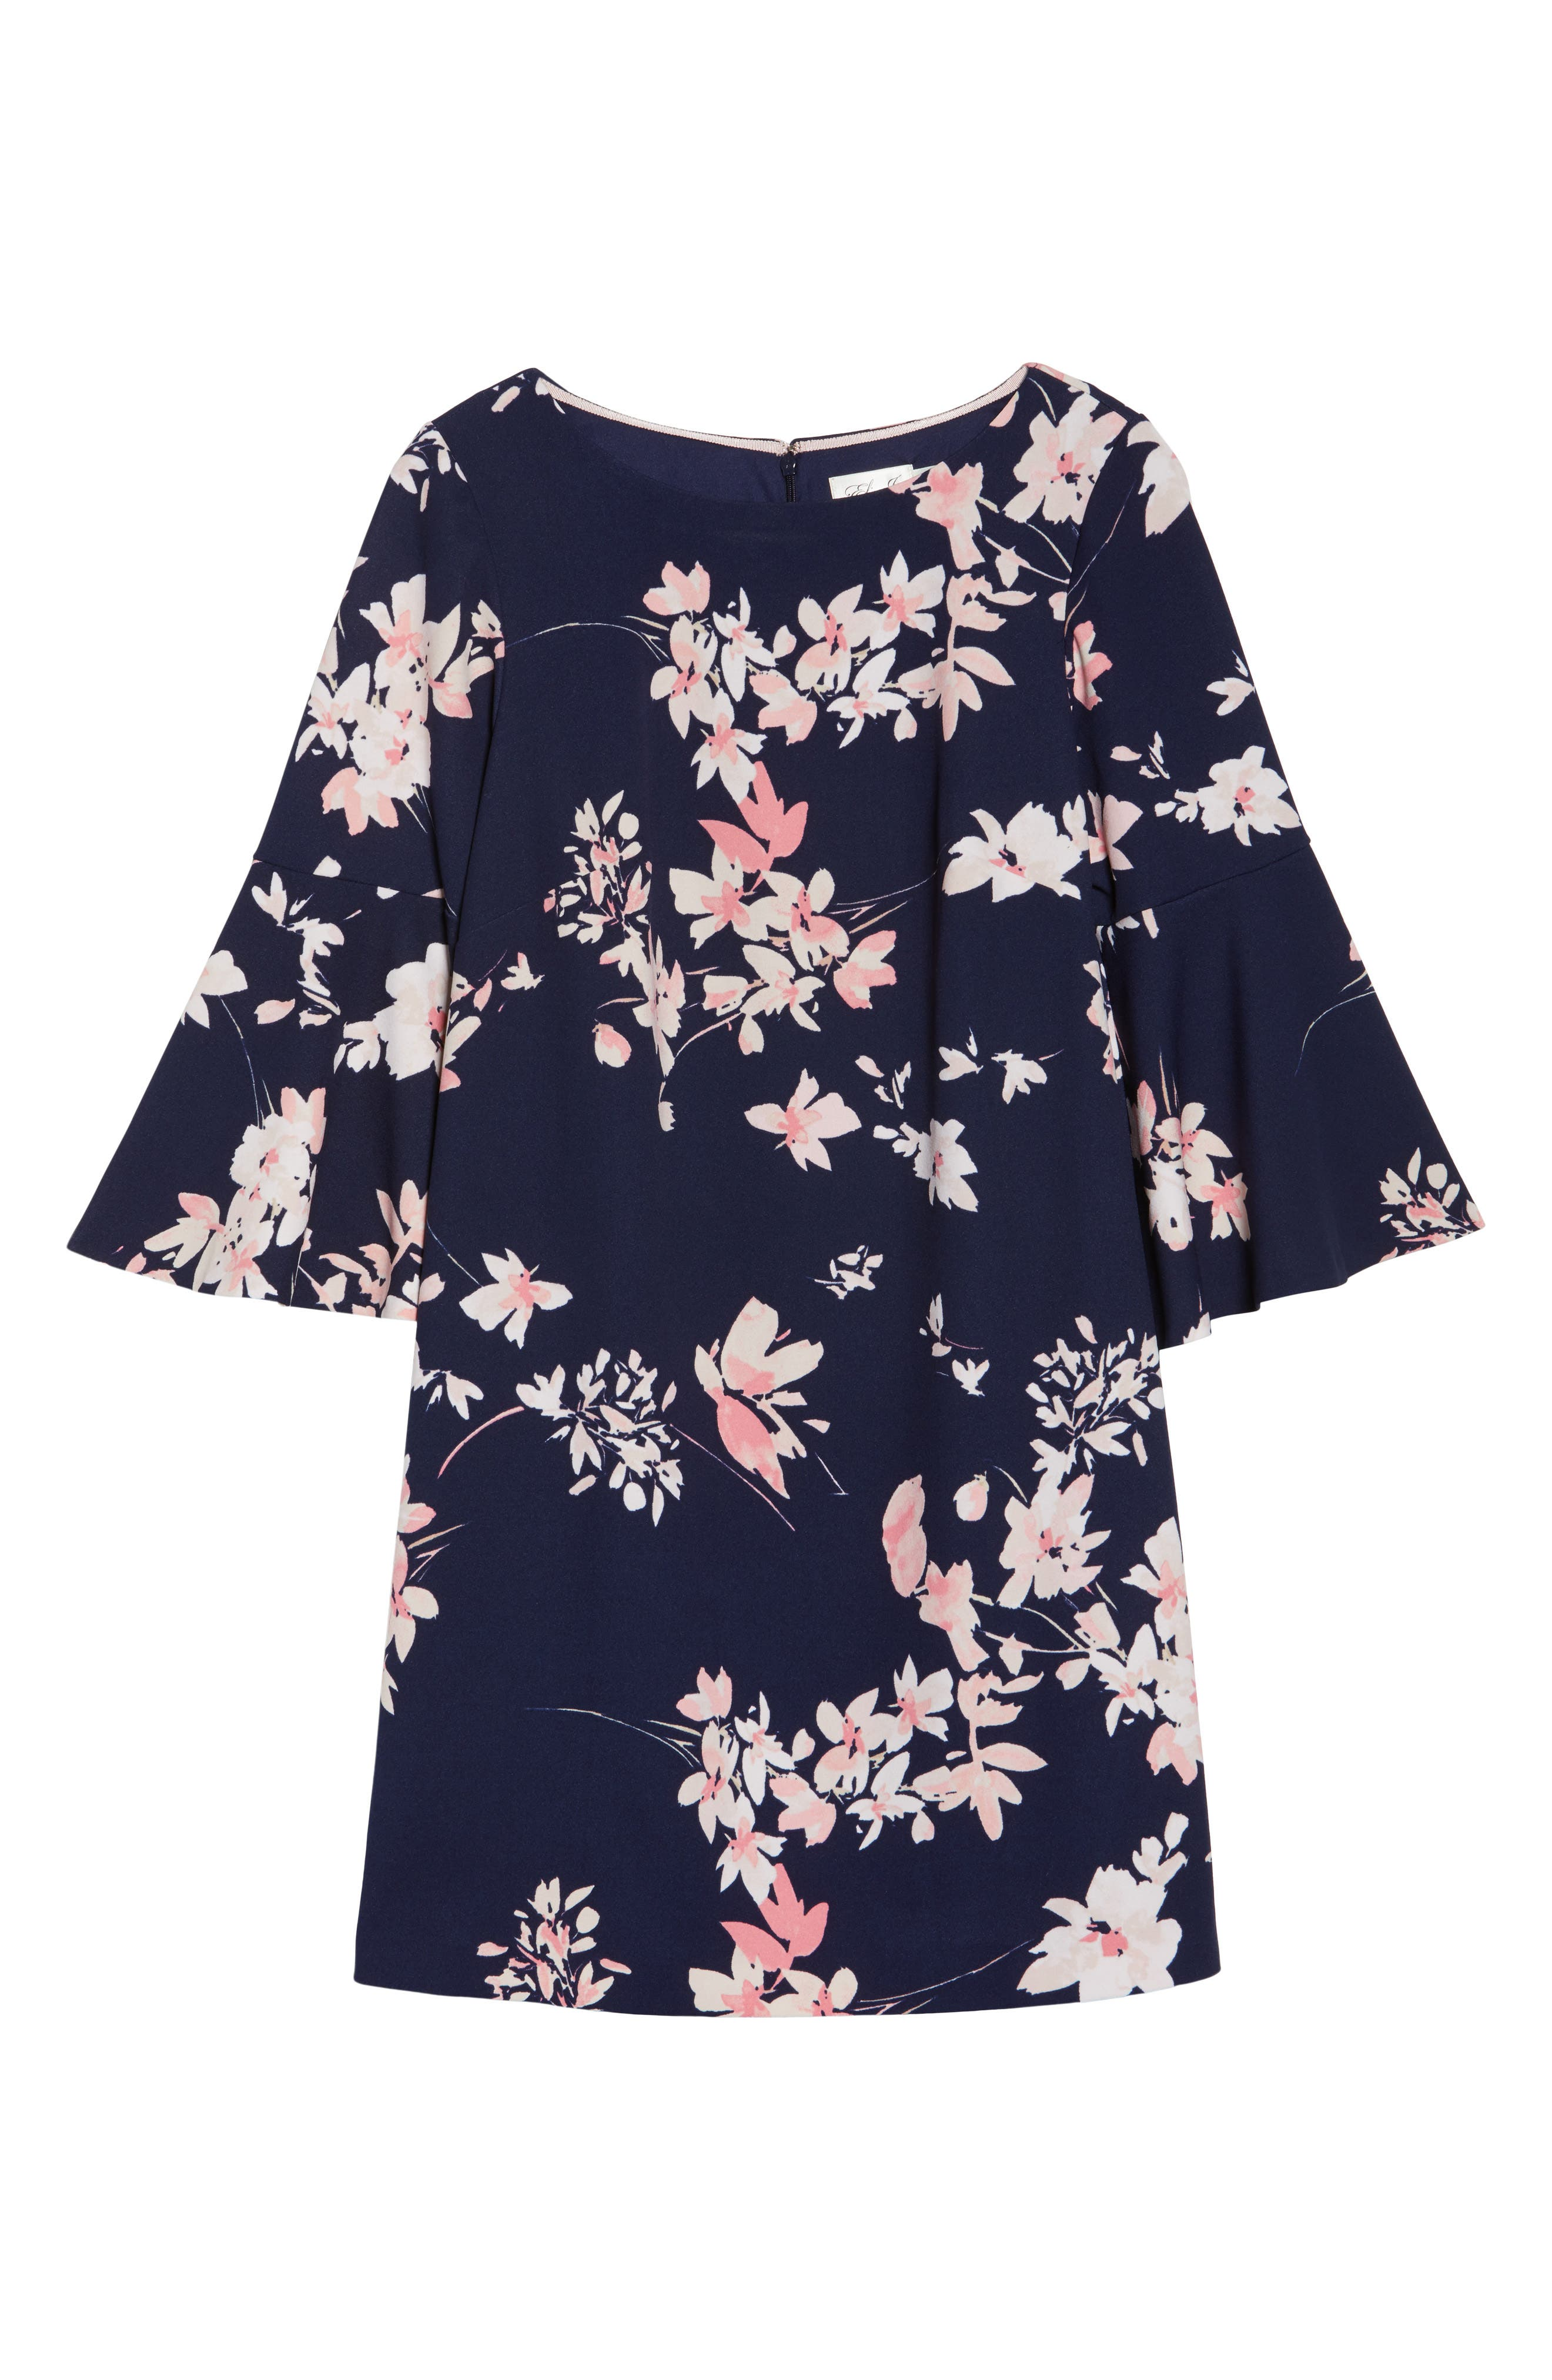 Floral Print Bell Sleeve Shift Dress,                             Alternate thumbnail 6, color,                             NAVY/ PINK